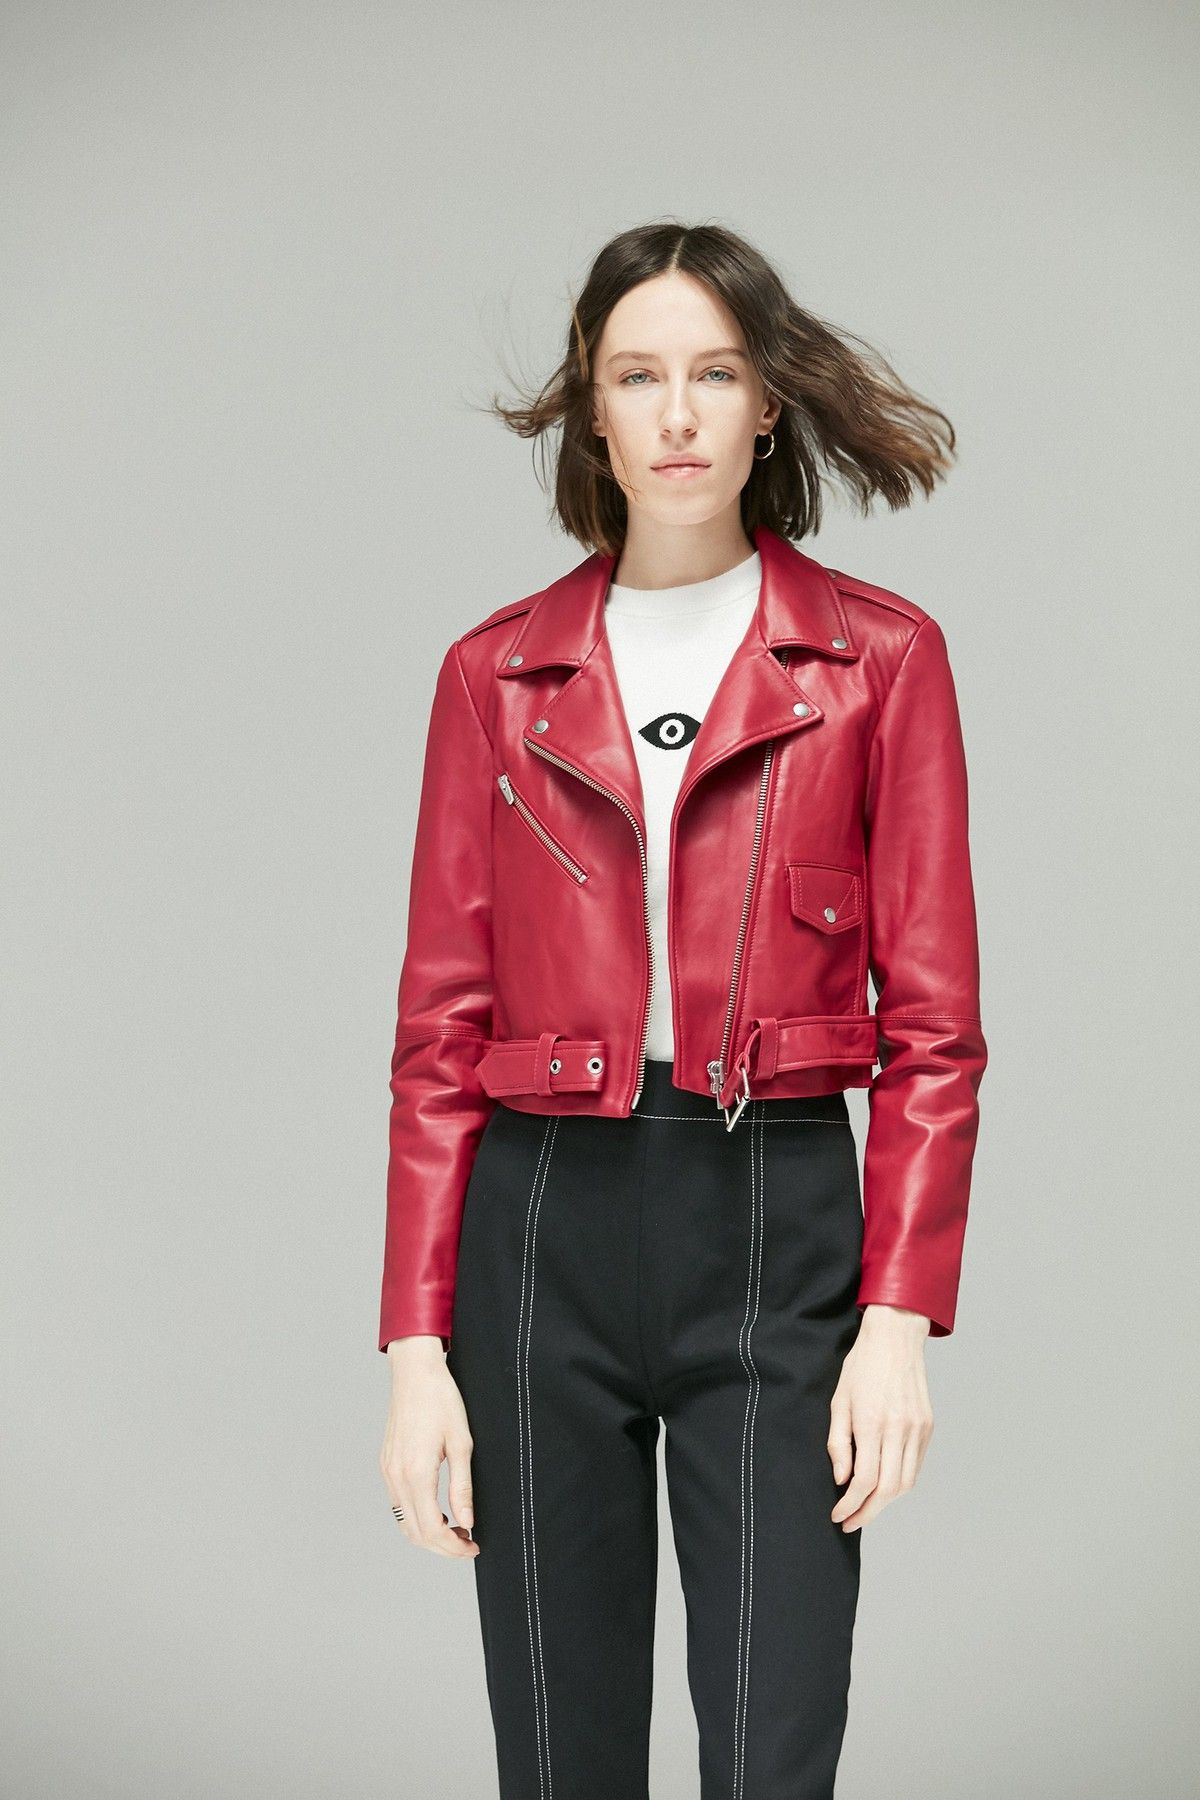 c2a677091 Baby Jane Jacket Cerise by Veda at ORCHARD MILE - if this red is a ...